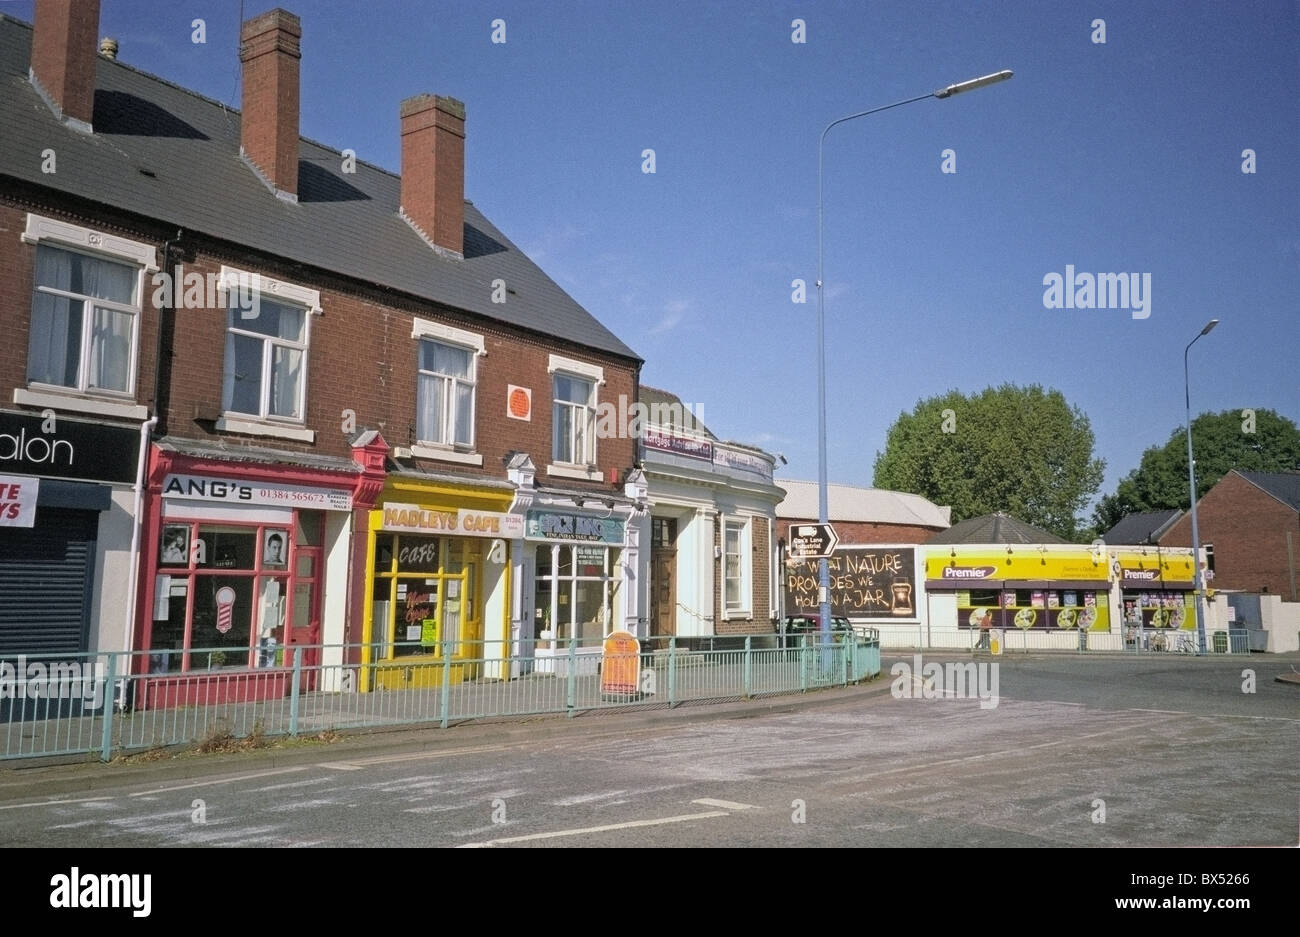 Halesowen Road, Old Hill, Sandwell, Black Country, West Midlands, England, UK - Stock Image